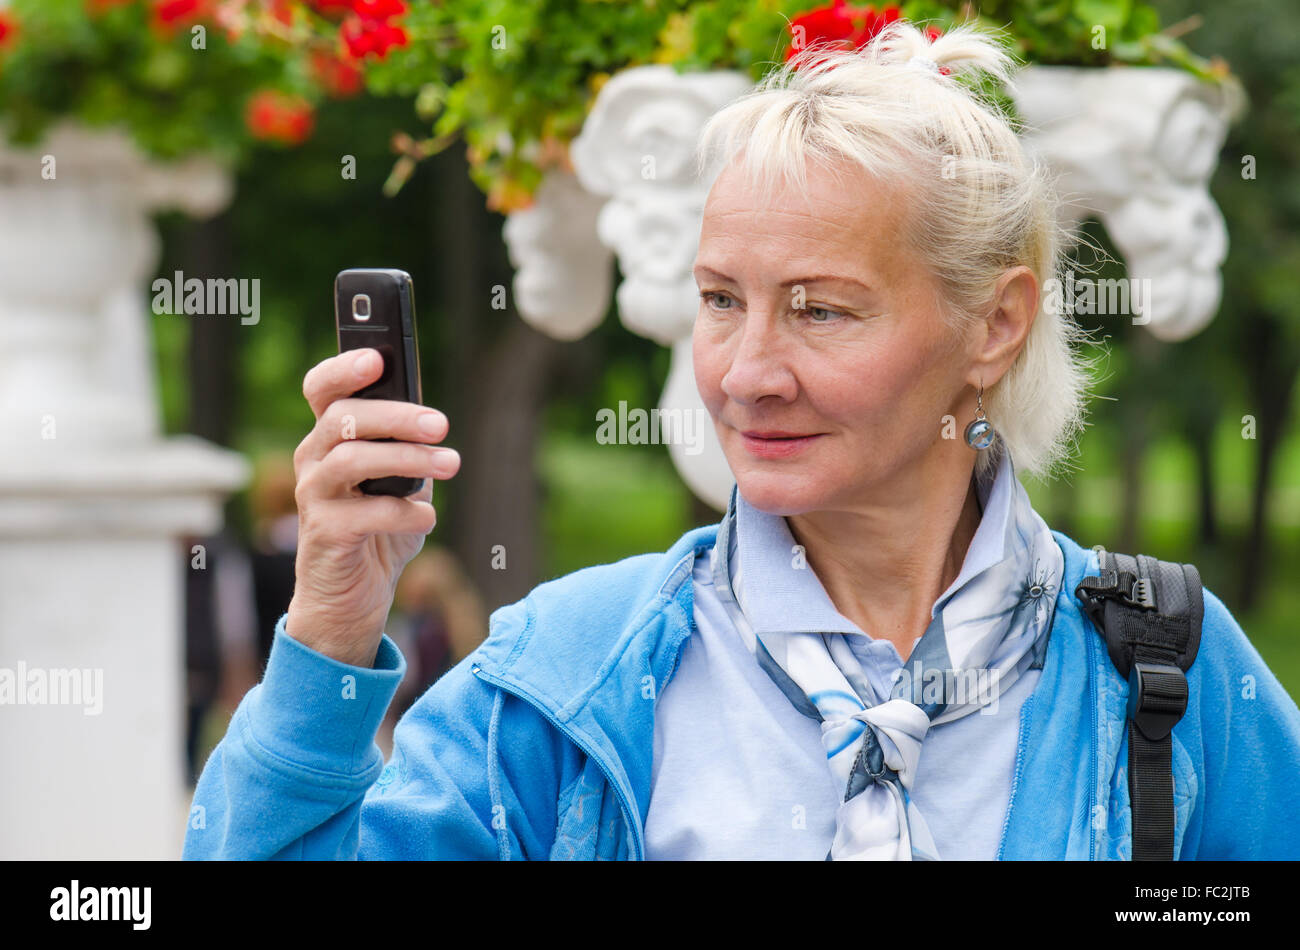 woman photographed in a park on the phone - Stock Image